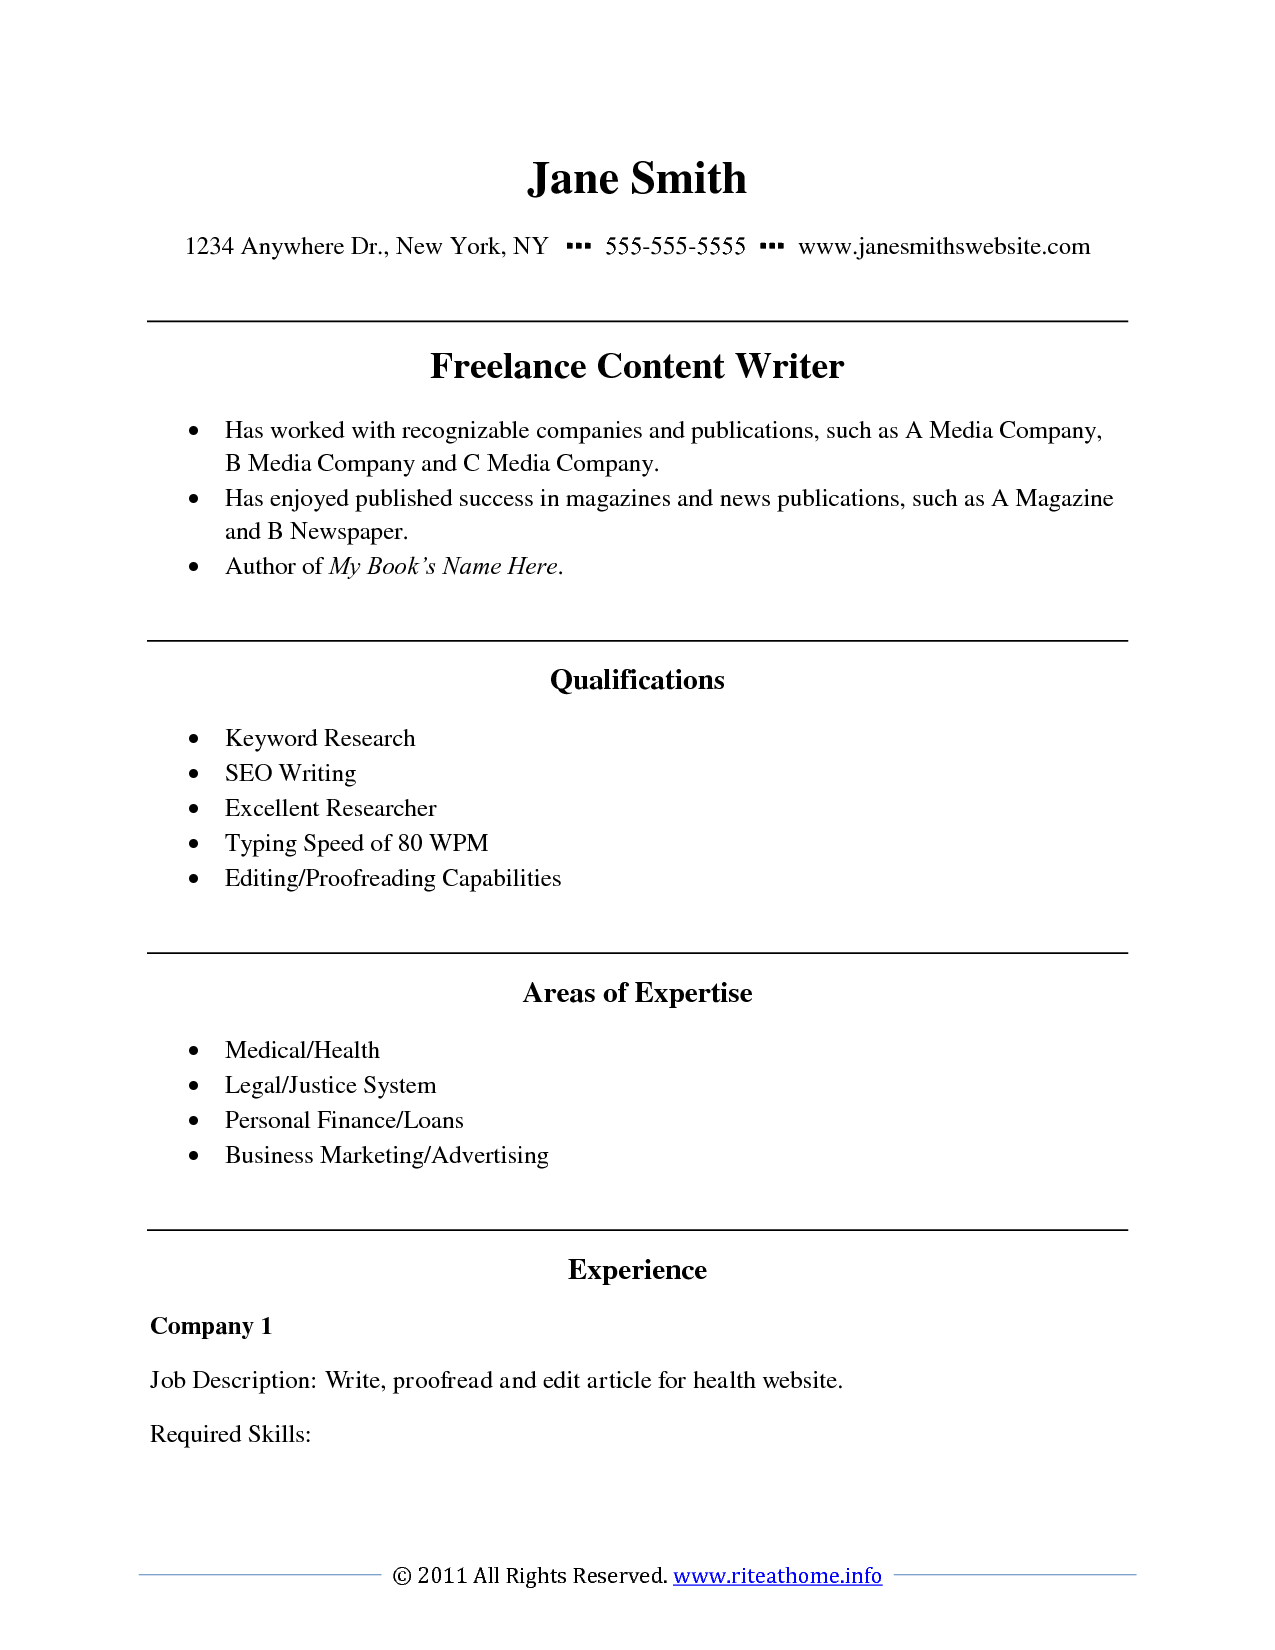 examples of how to write a resumes template examples of how to write a resumes